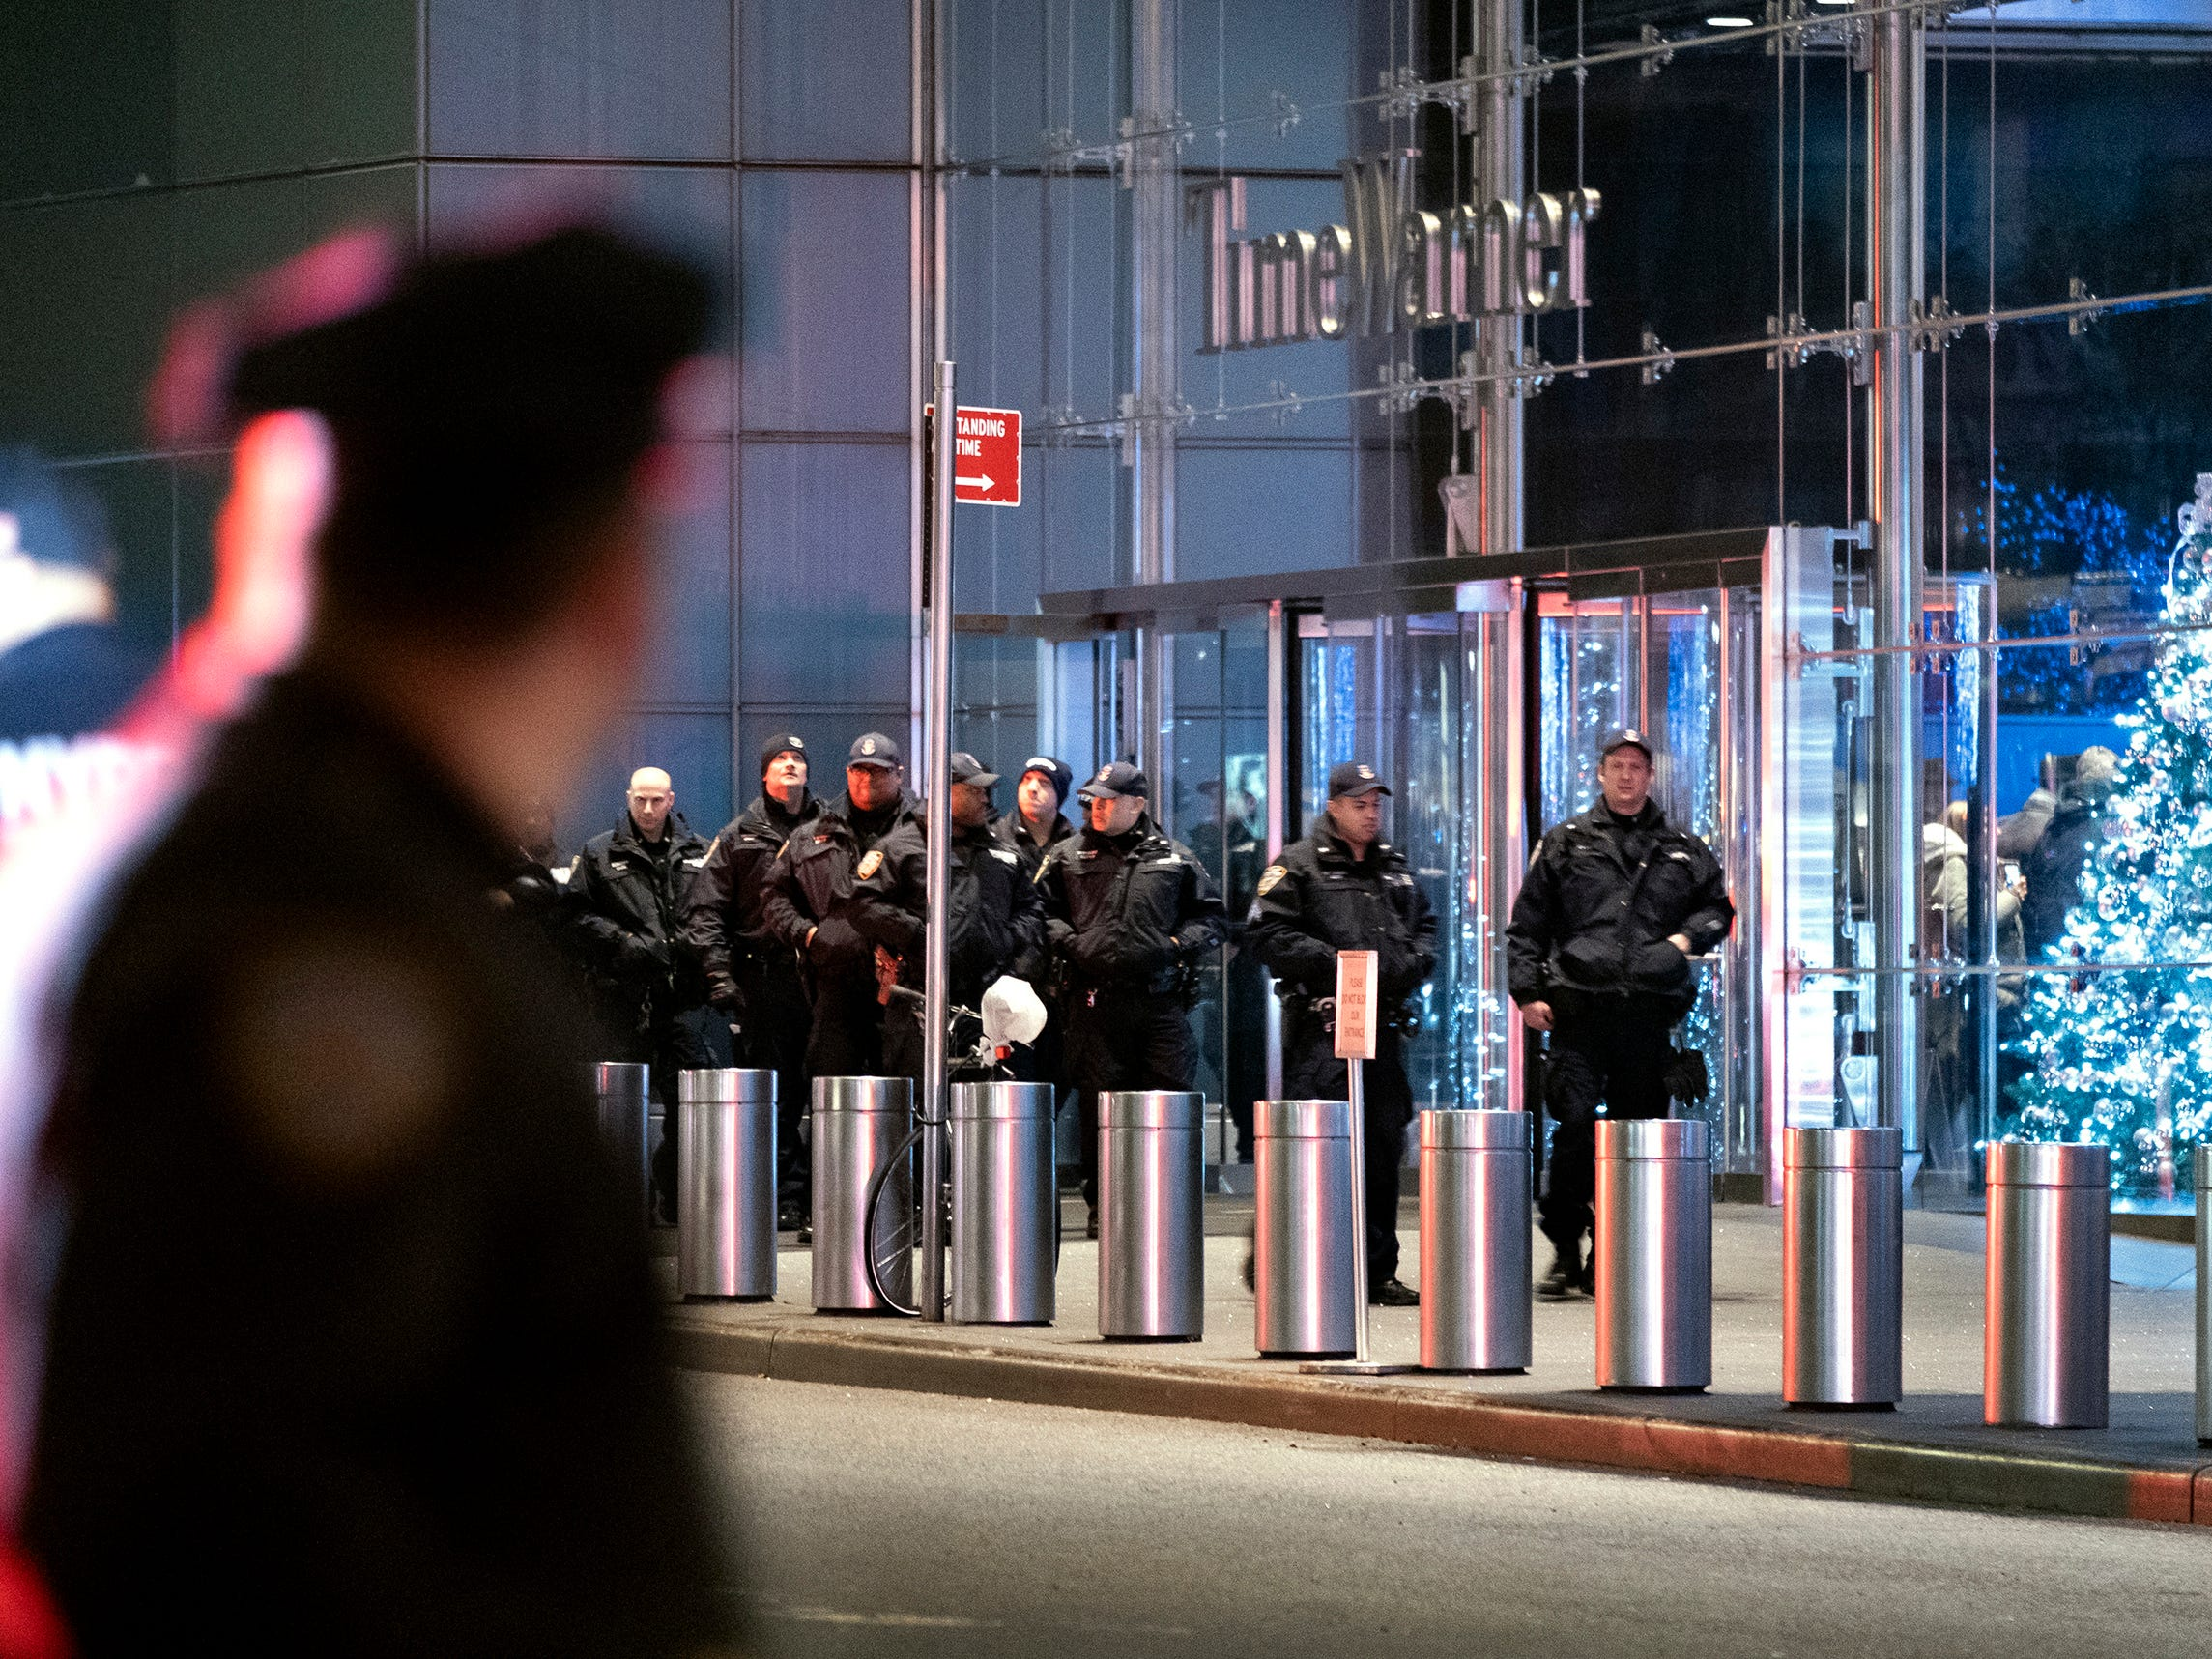 New York City police officers walk near the Time Warner Center Thursday, Dec. 6, 2018, after a bomb threat was called into the building and occupants were evacuated, including CNN employees. Police have given the all-clear after a phoned in bomb threat forced the evacuation of CNN's offices in New York.